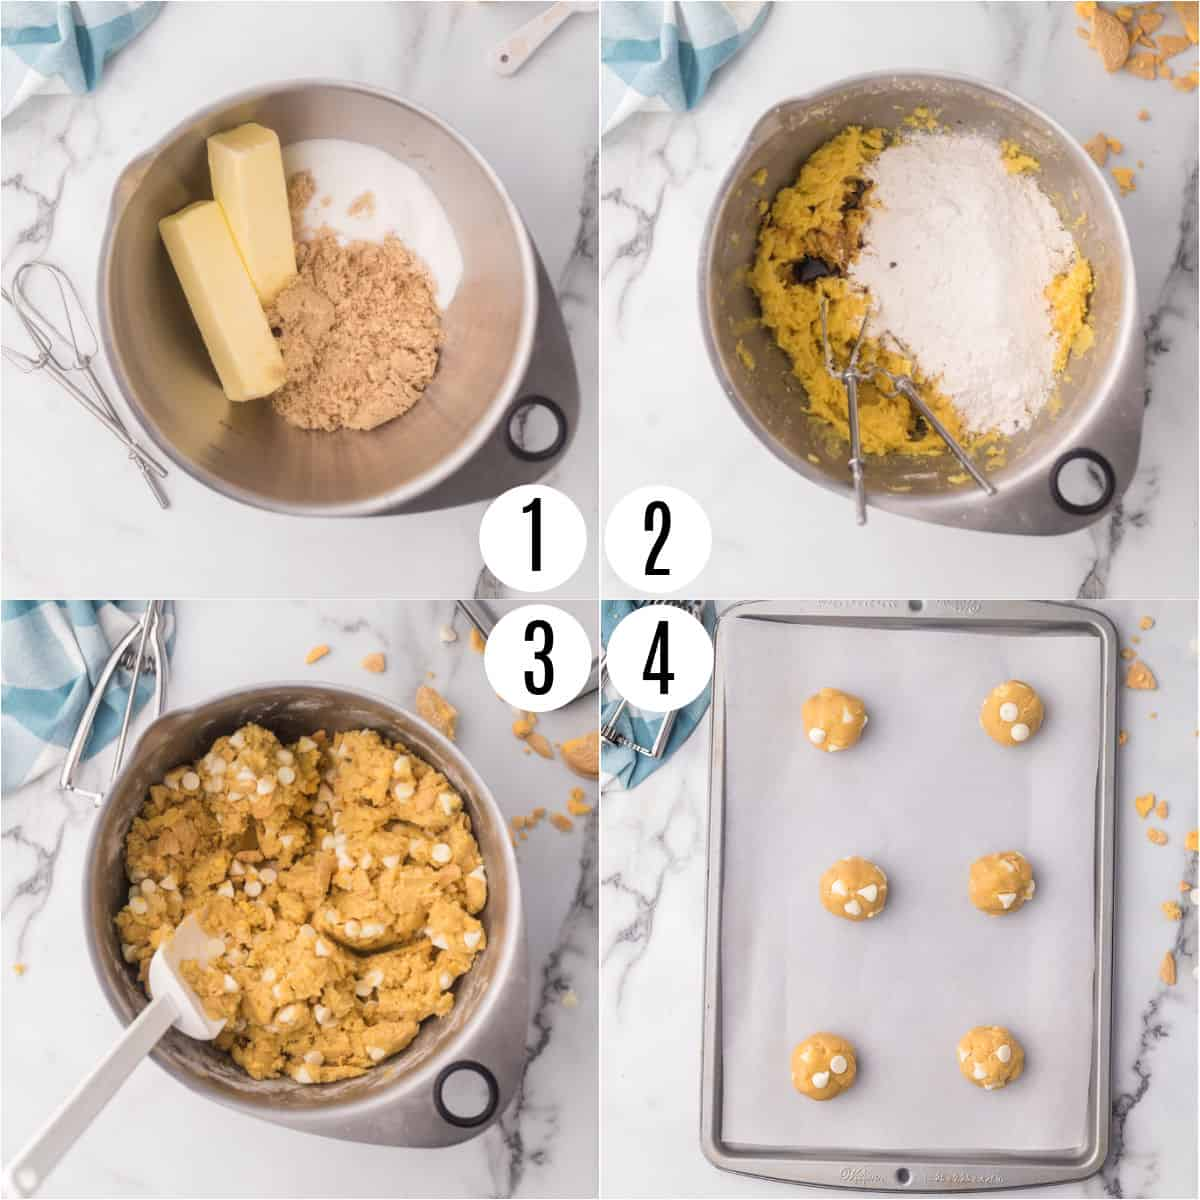 Step by step photos showing how to make lemon crunch cookies.